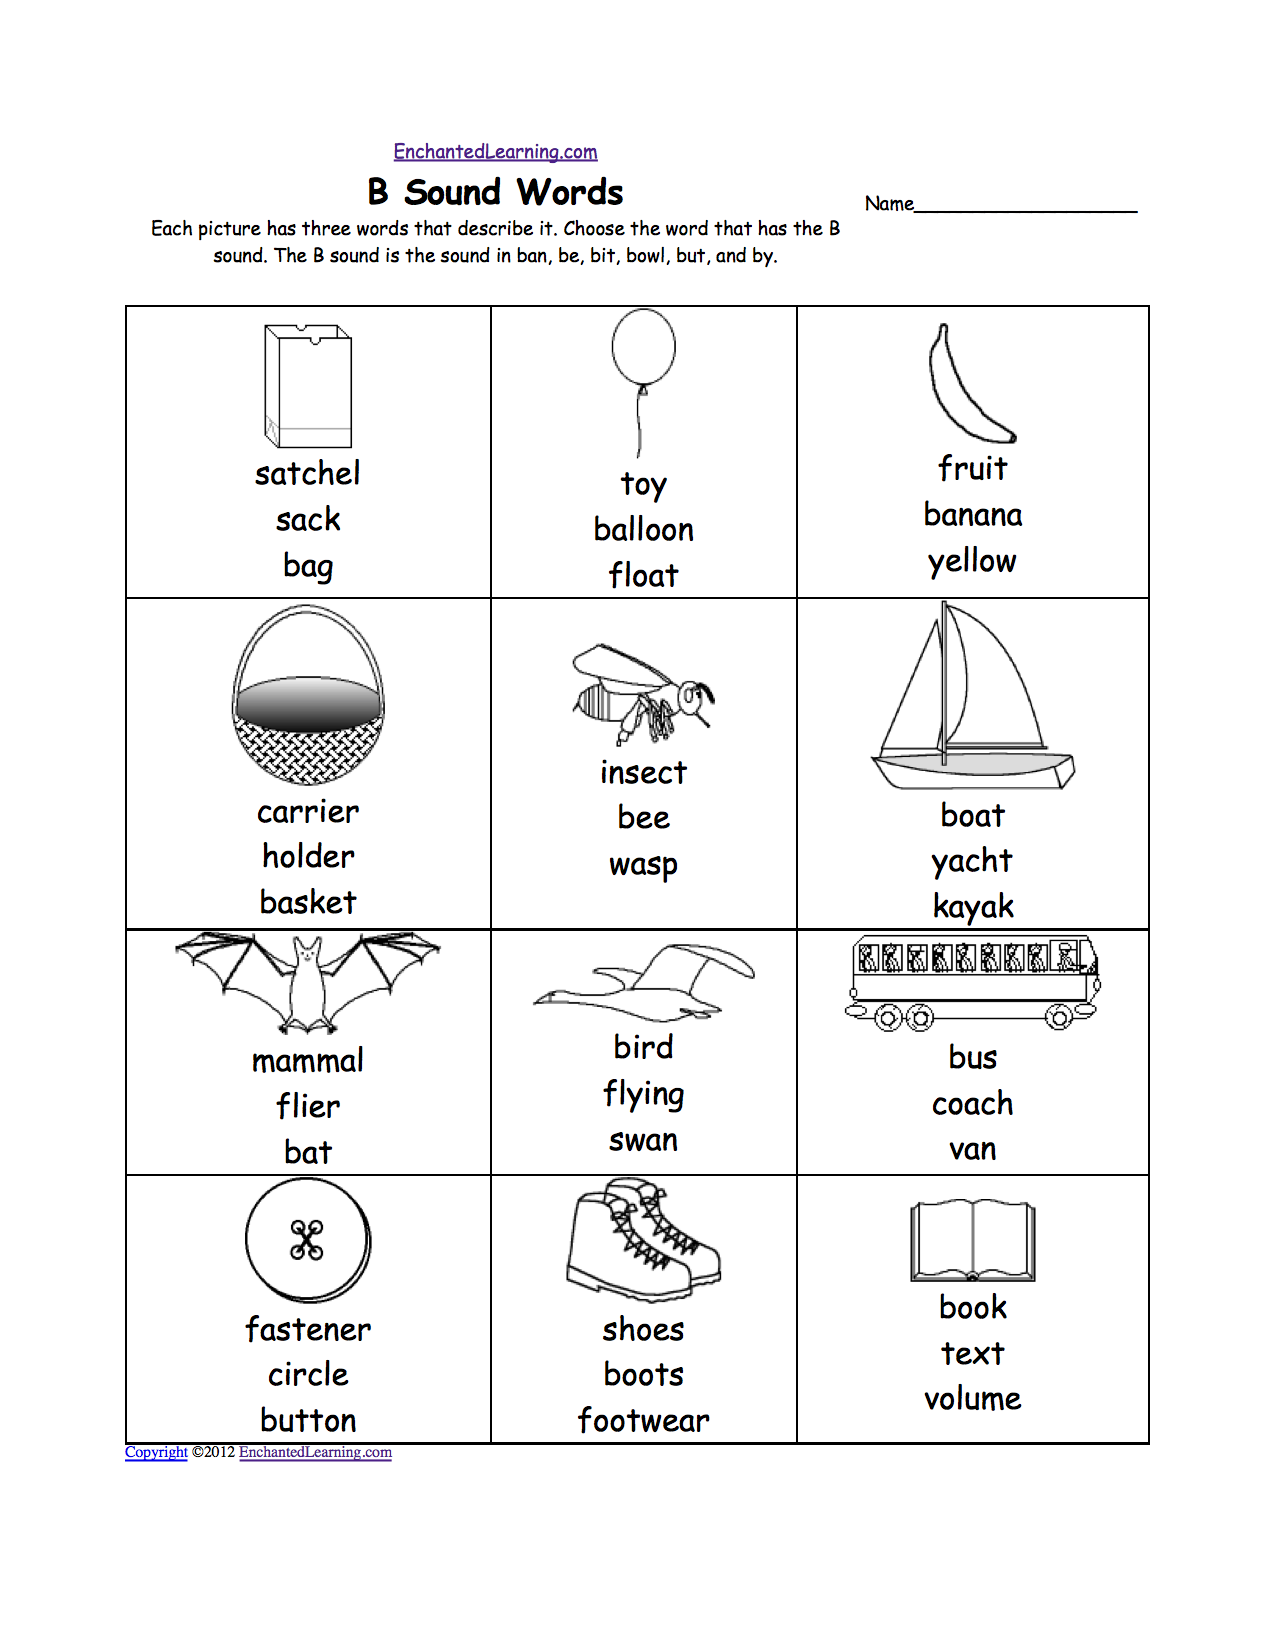 Proatmealus  Marvelous Phonics Worksheets Multiple Choice Worksheets To Print  With Excellent Quotbquot Sound Phonics Worksheet Multiple Choice Each Picture Has Three Words That Describe It Choose The Word That Has A Quotbquot Sound The Quotbquot Sound Is The Sound  With Comely Adjectives Worksheets For Grade  Also City Mouse Country Mouse Worksheets In Addition Multiply By Tens Worksheet And Order Of Operations Worksheet Generator As Well As Reduce Fractions Worksheets Additionally Multiplication Worksheets  From Enchantedlearningcom With Proatmealus  Excellent Phonics Worksheets Multiple Choice Worksheets To Print  With Comely Quotbquot Sound Phonics Worksheet Multiple Choice Each Picture Has Three Words That Describe It Choose The Word That Has A Quotbquot Sound The Quotbquot Sound Is The Sound  And Marvelous Adjectives Worksheets For Grade  Also City Mouse Country Mouse Worksheets In Addition Multiply By Tens Worksheet From Enchantedlearningcom